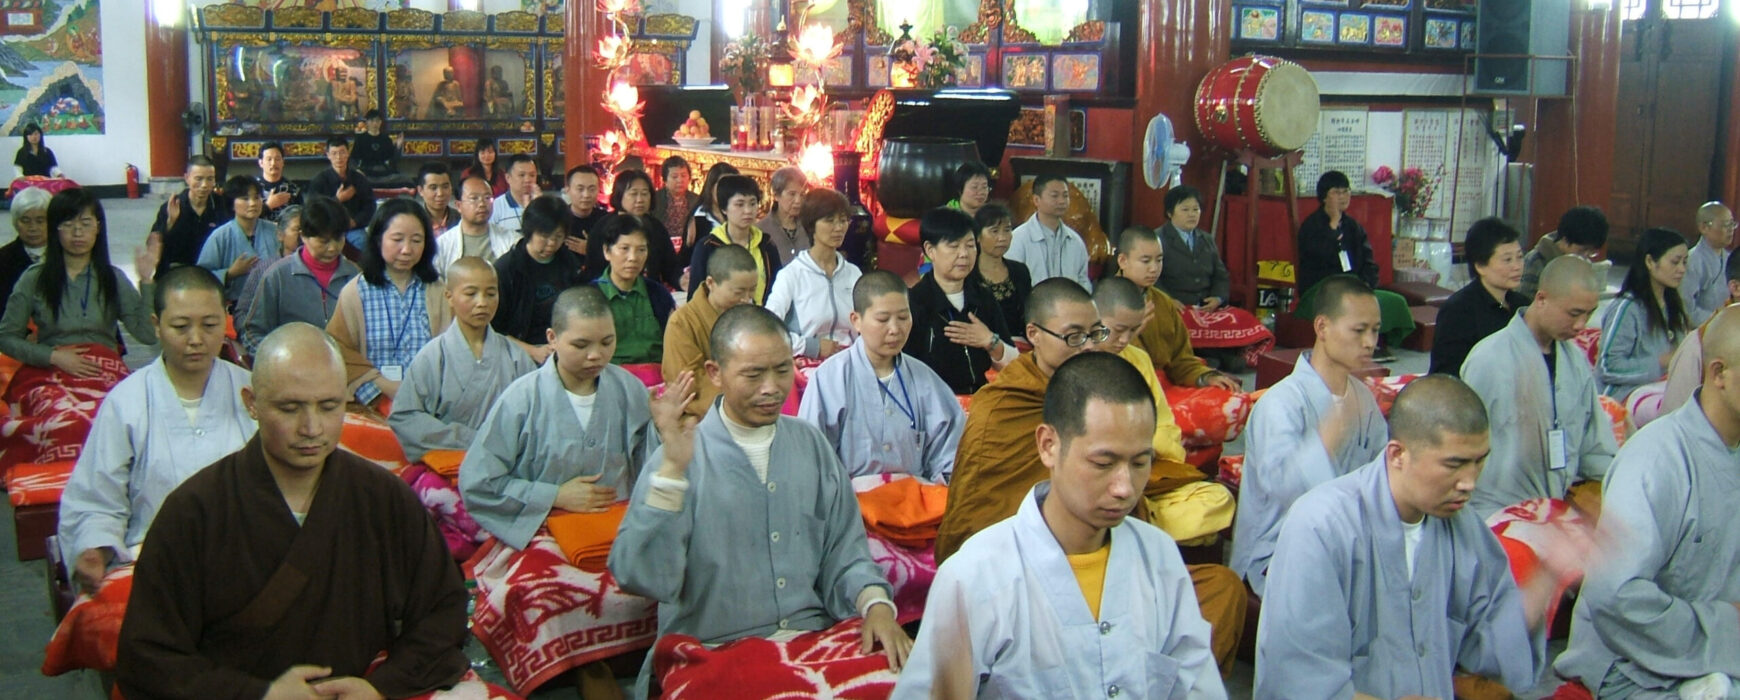 Guest Lecture: Theravāda Meditation within Contemporary Chinese Buddhism. The case of Sichuan Shifosi 石佛寺